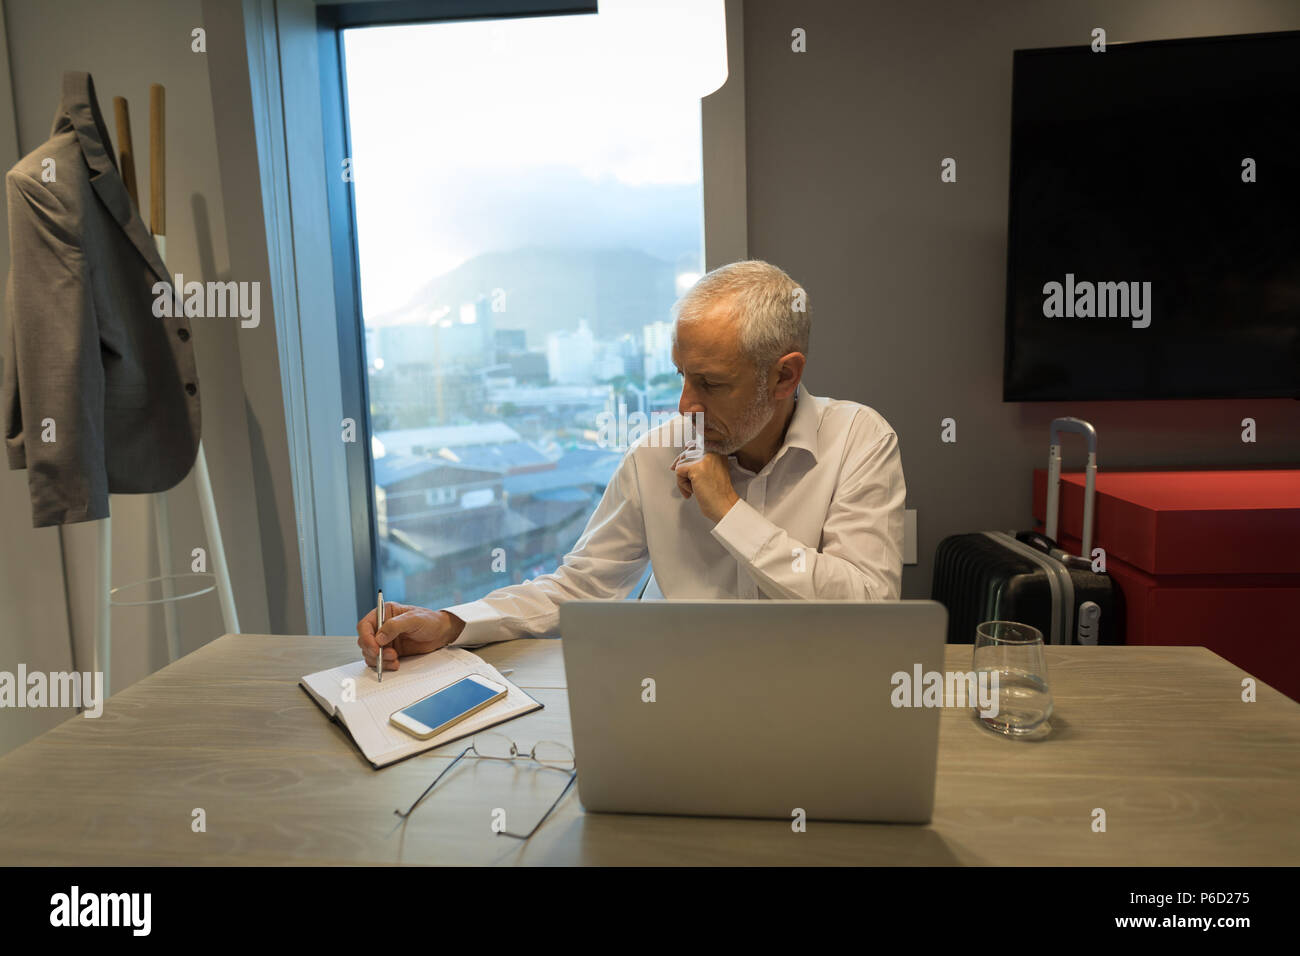 Businessman writing notes on diary at desk - Stock Image